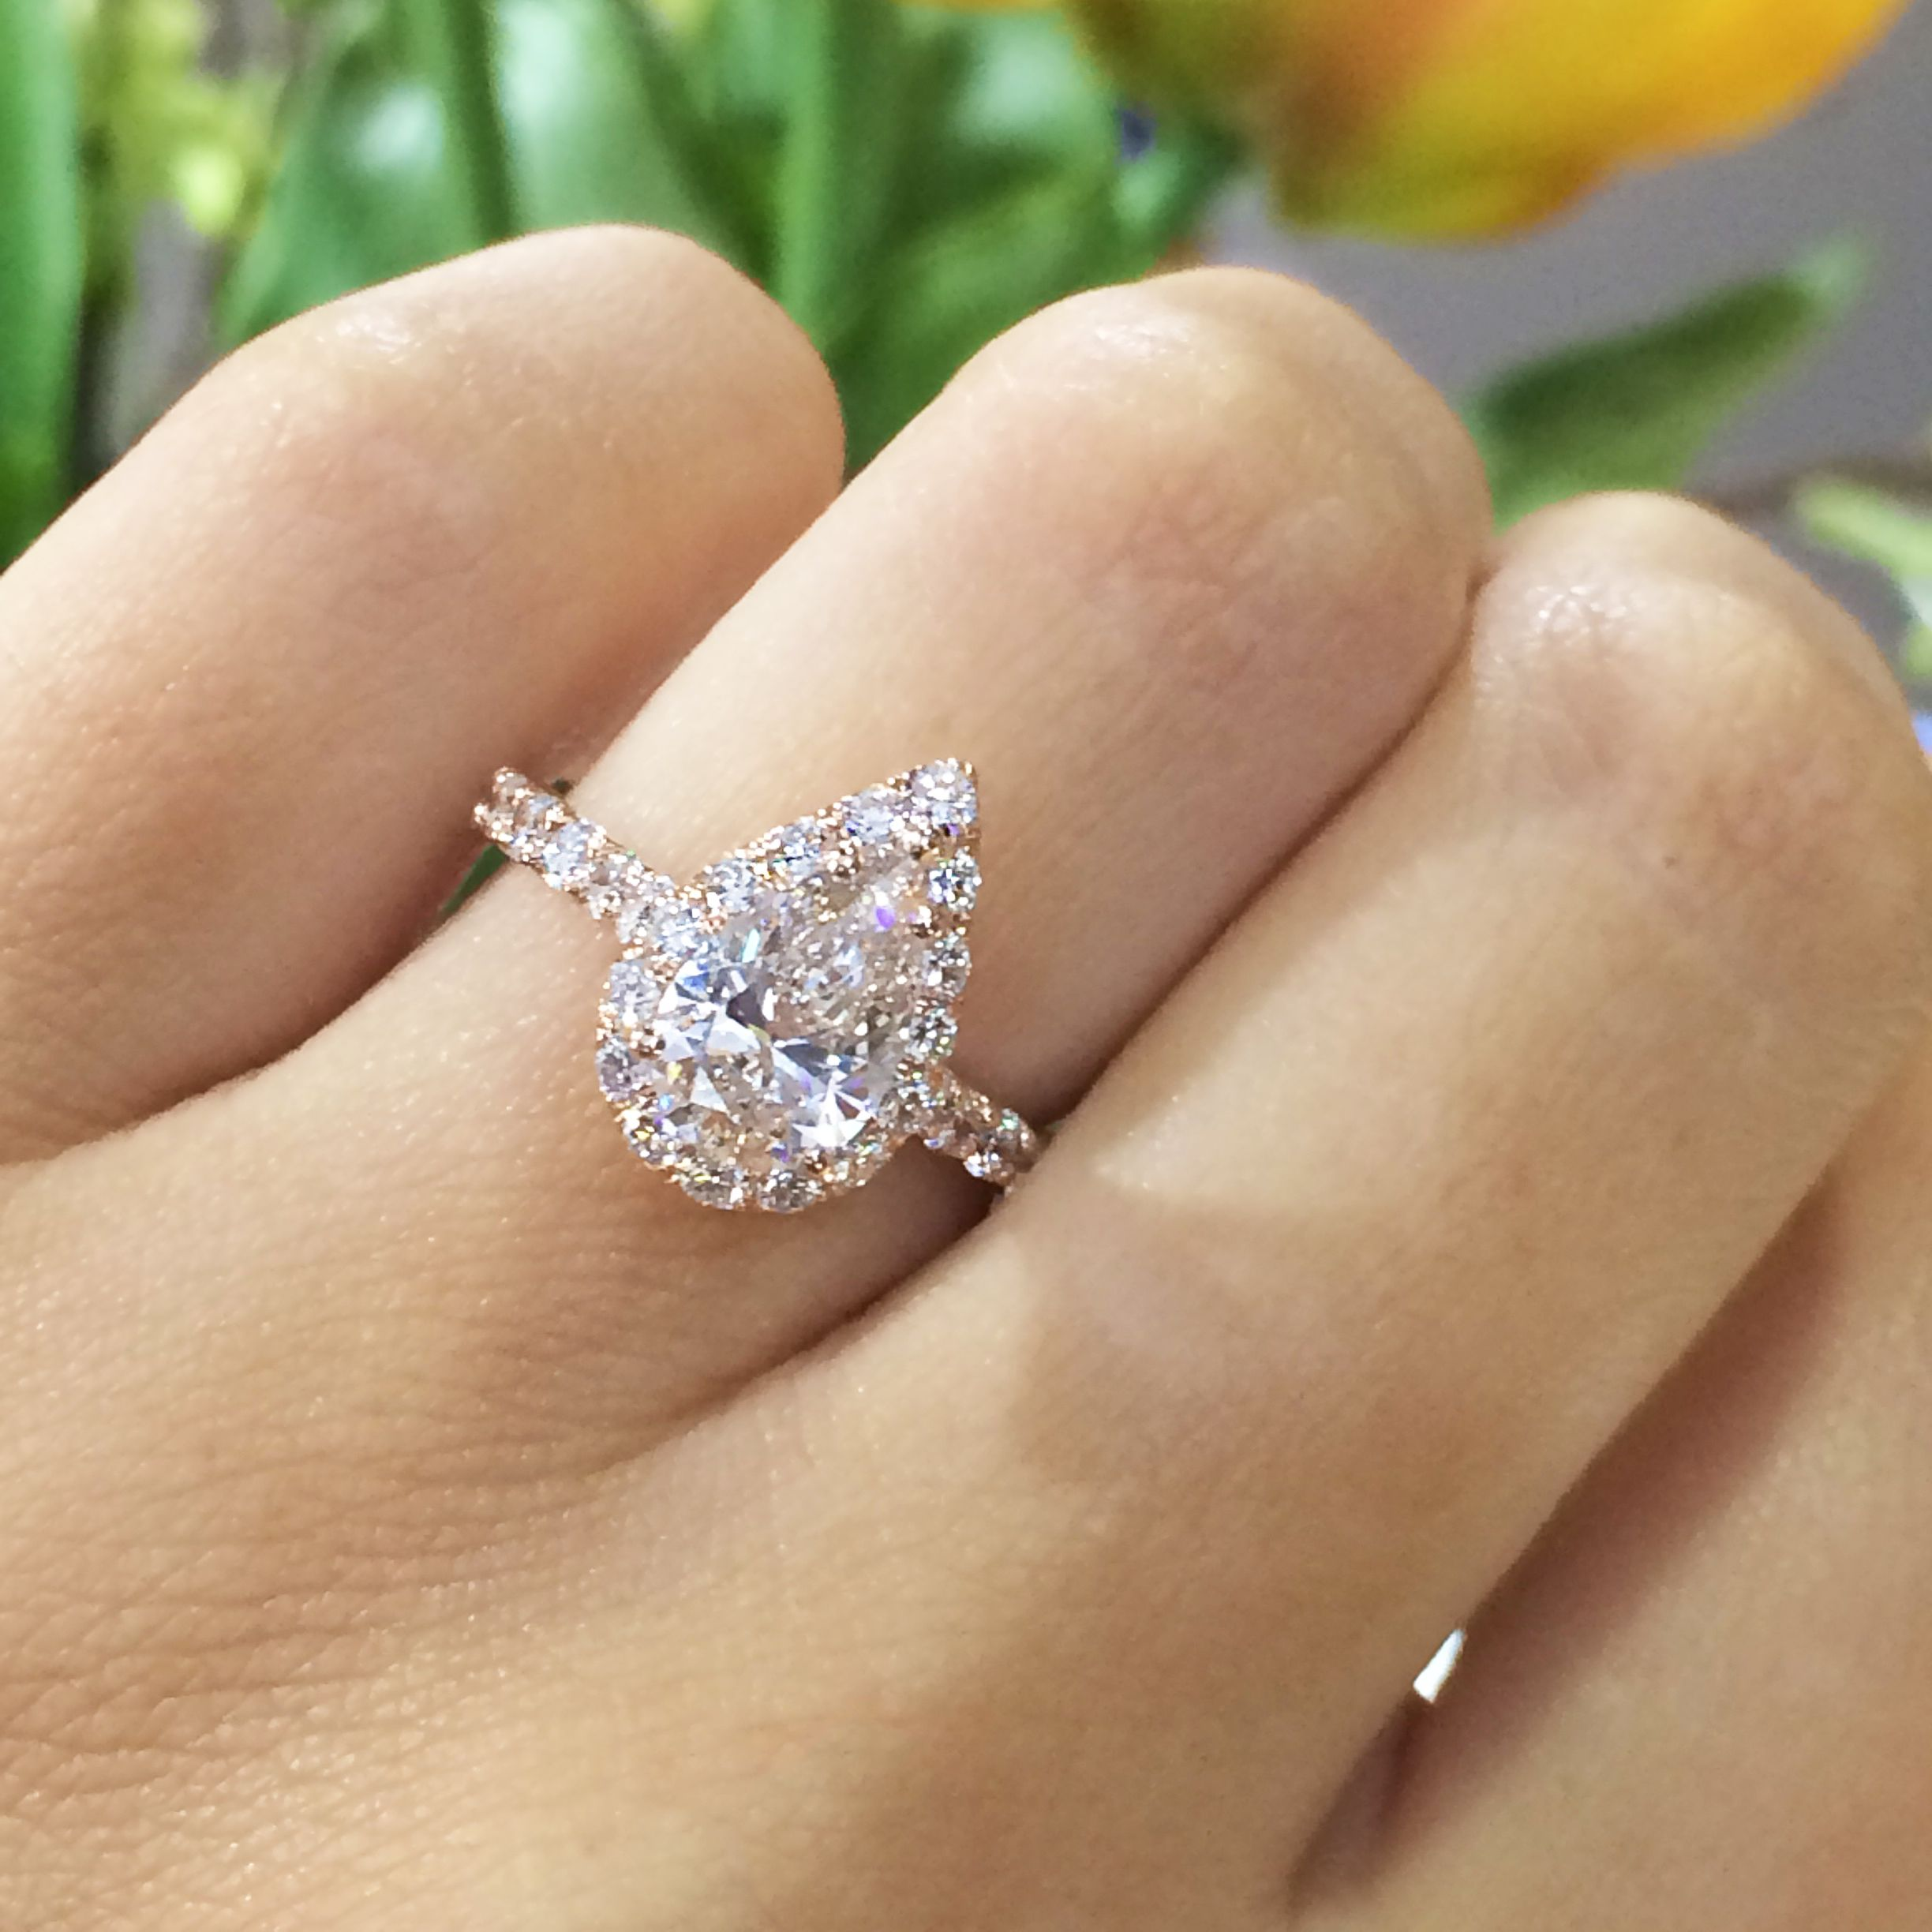 pear engagement bespoke wedding stacking and platinum modern products diamond contemporary shape shaped set ring